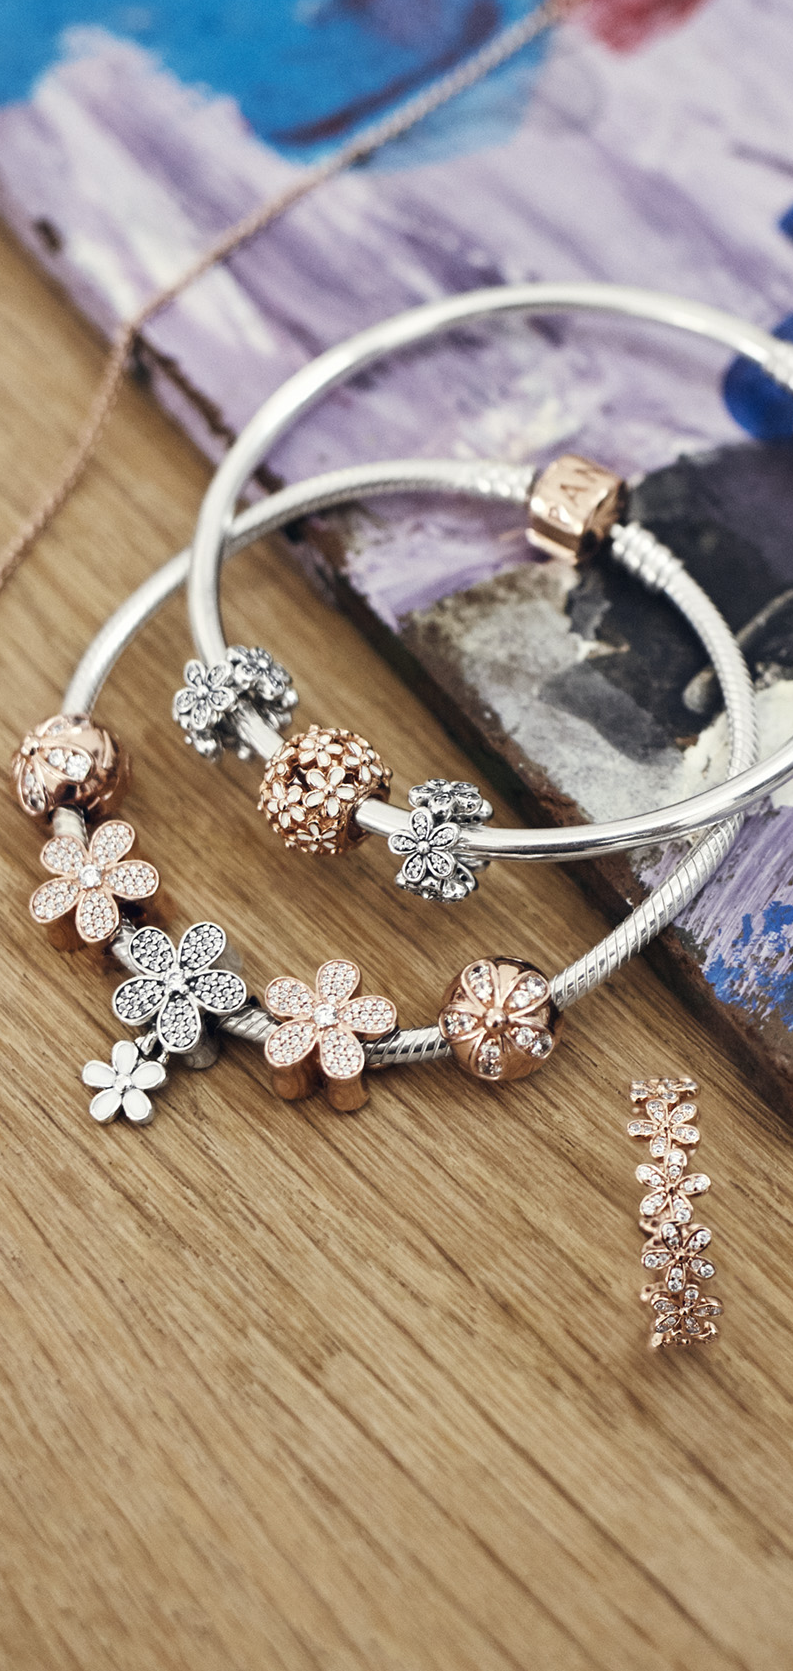 A Fresh Take On Rose Coloured Metals Finely Detailed Daisy Charms And Rings Made To Match Your Spring Mood Favourite Sterling Silver Pieces